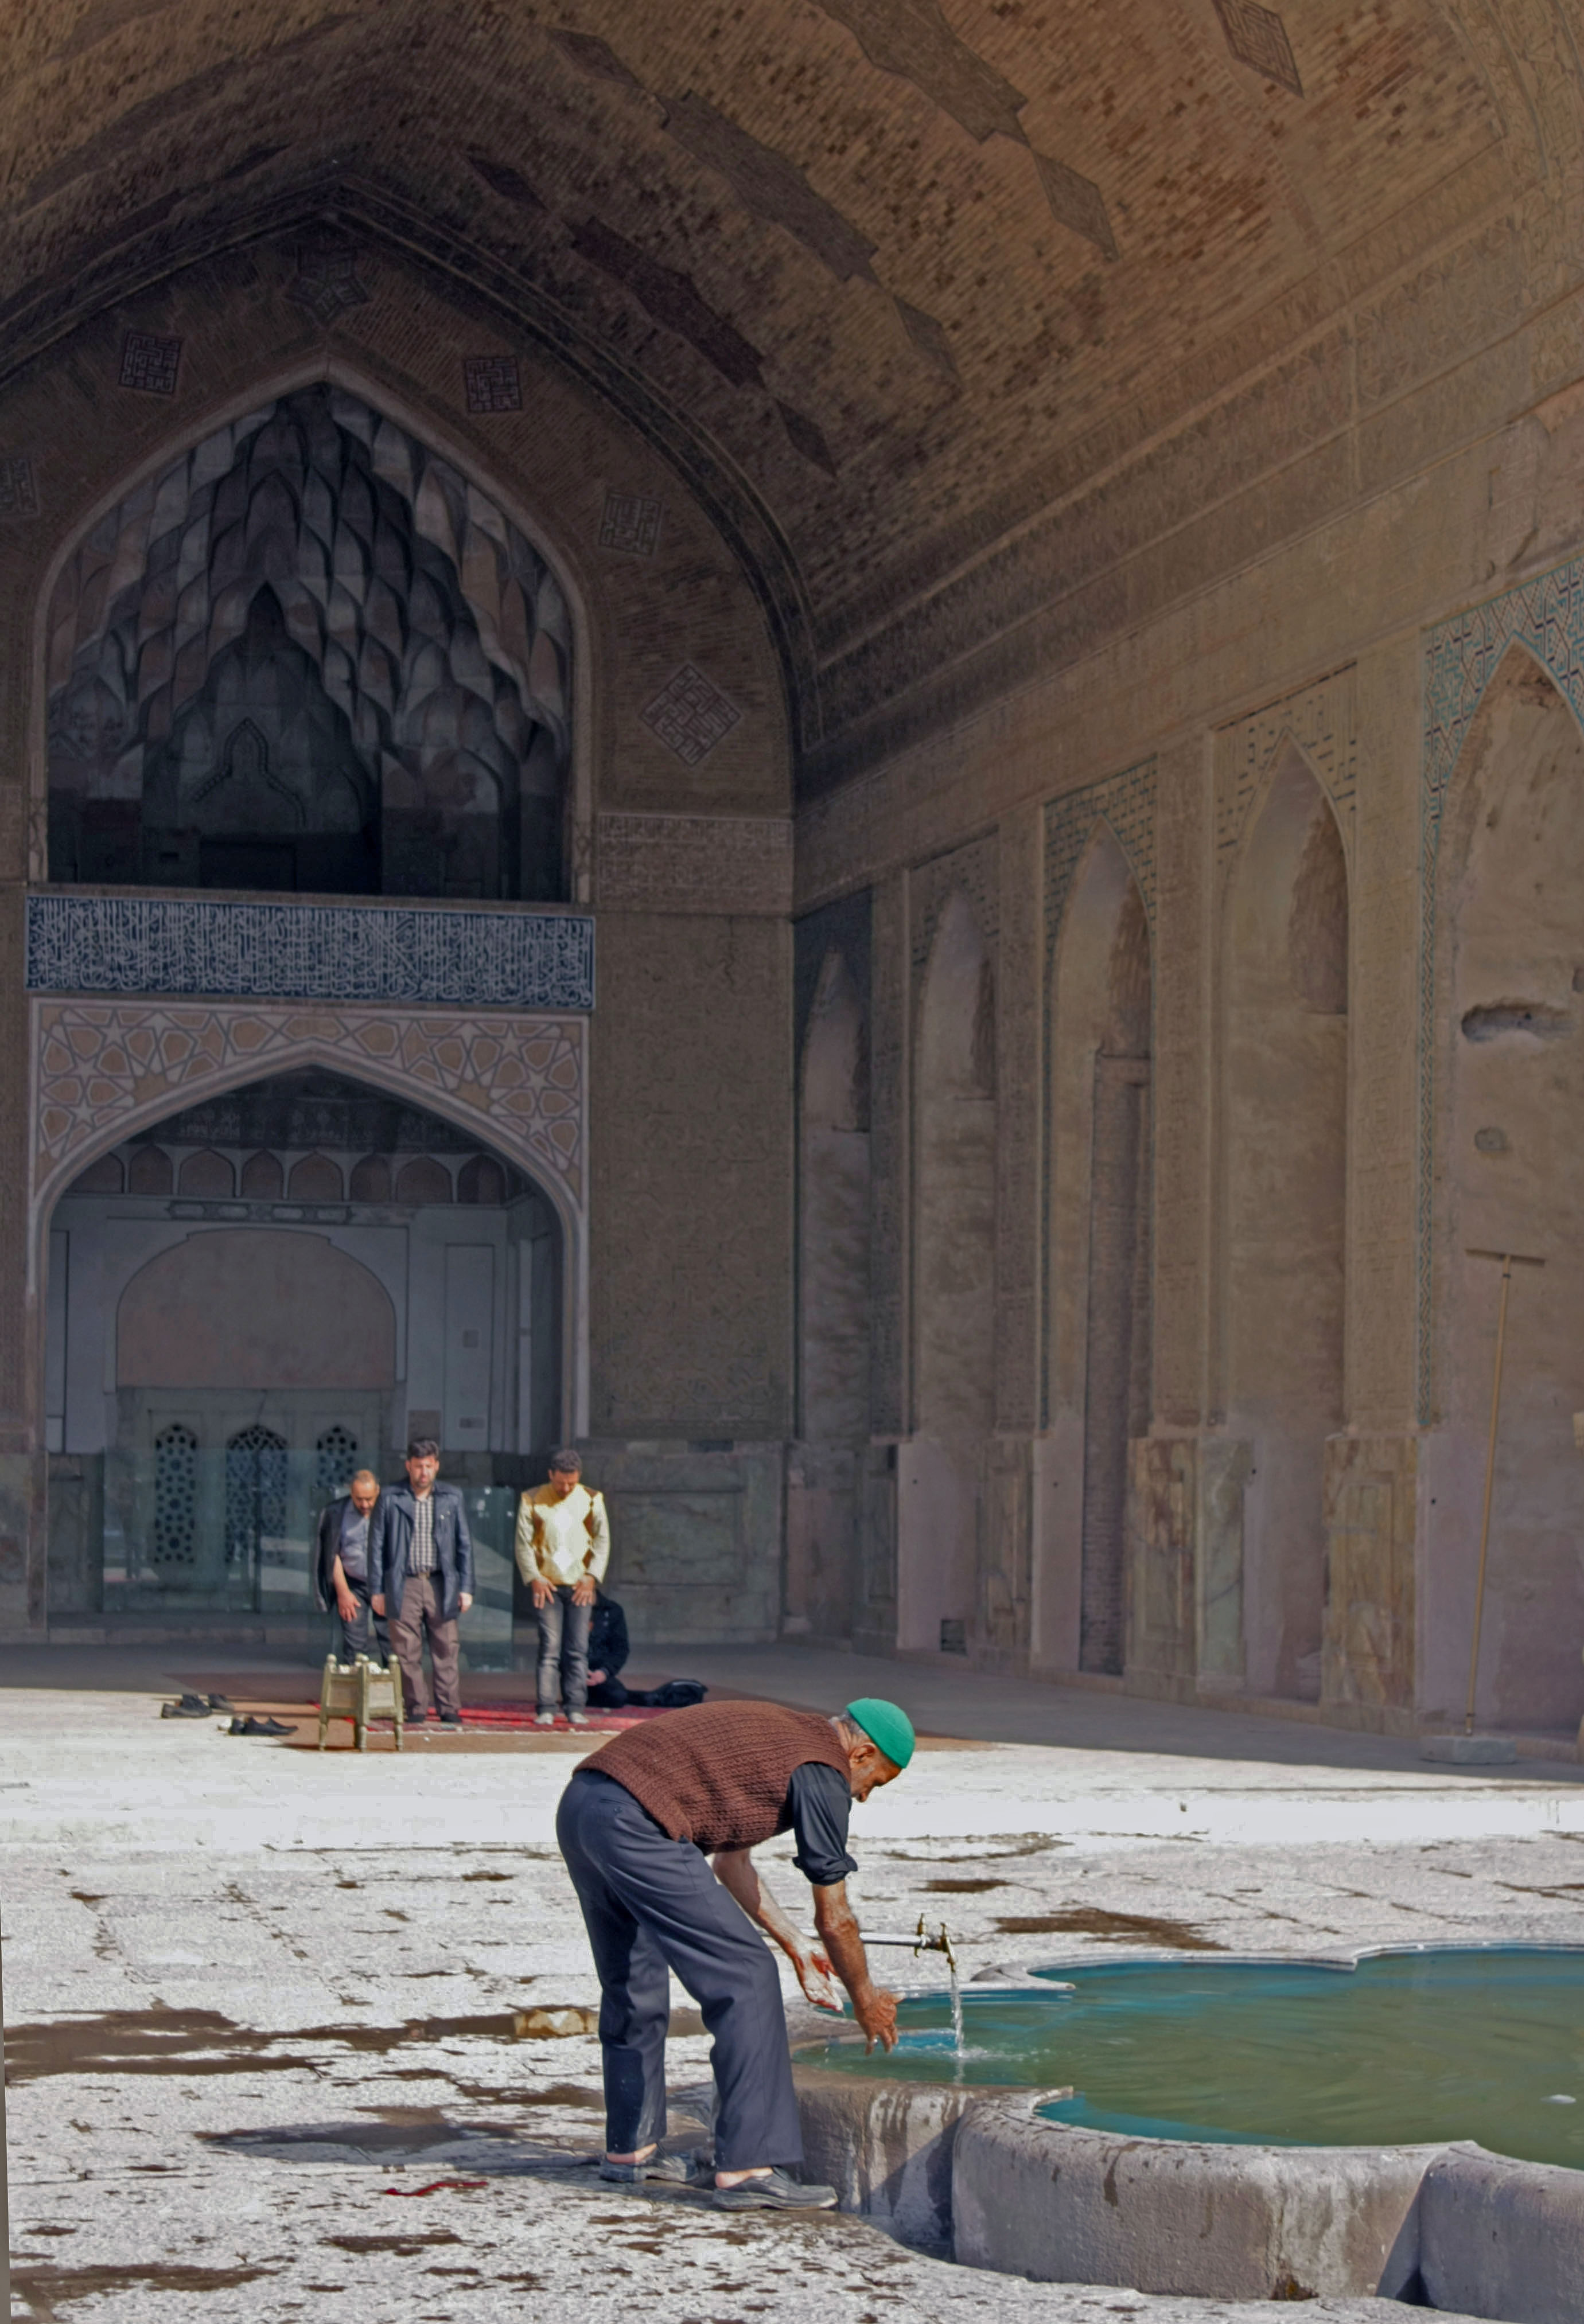 Image of Man performing ablution, and men praying in the background, in the courtyard of a mosque in Iran.